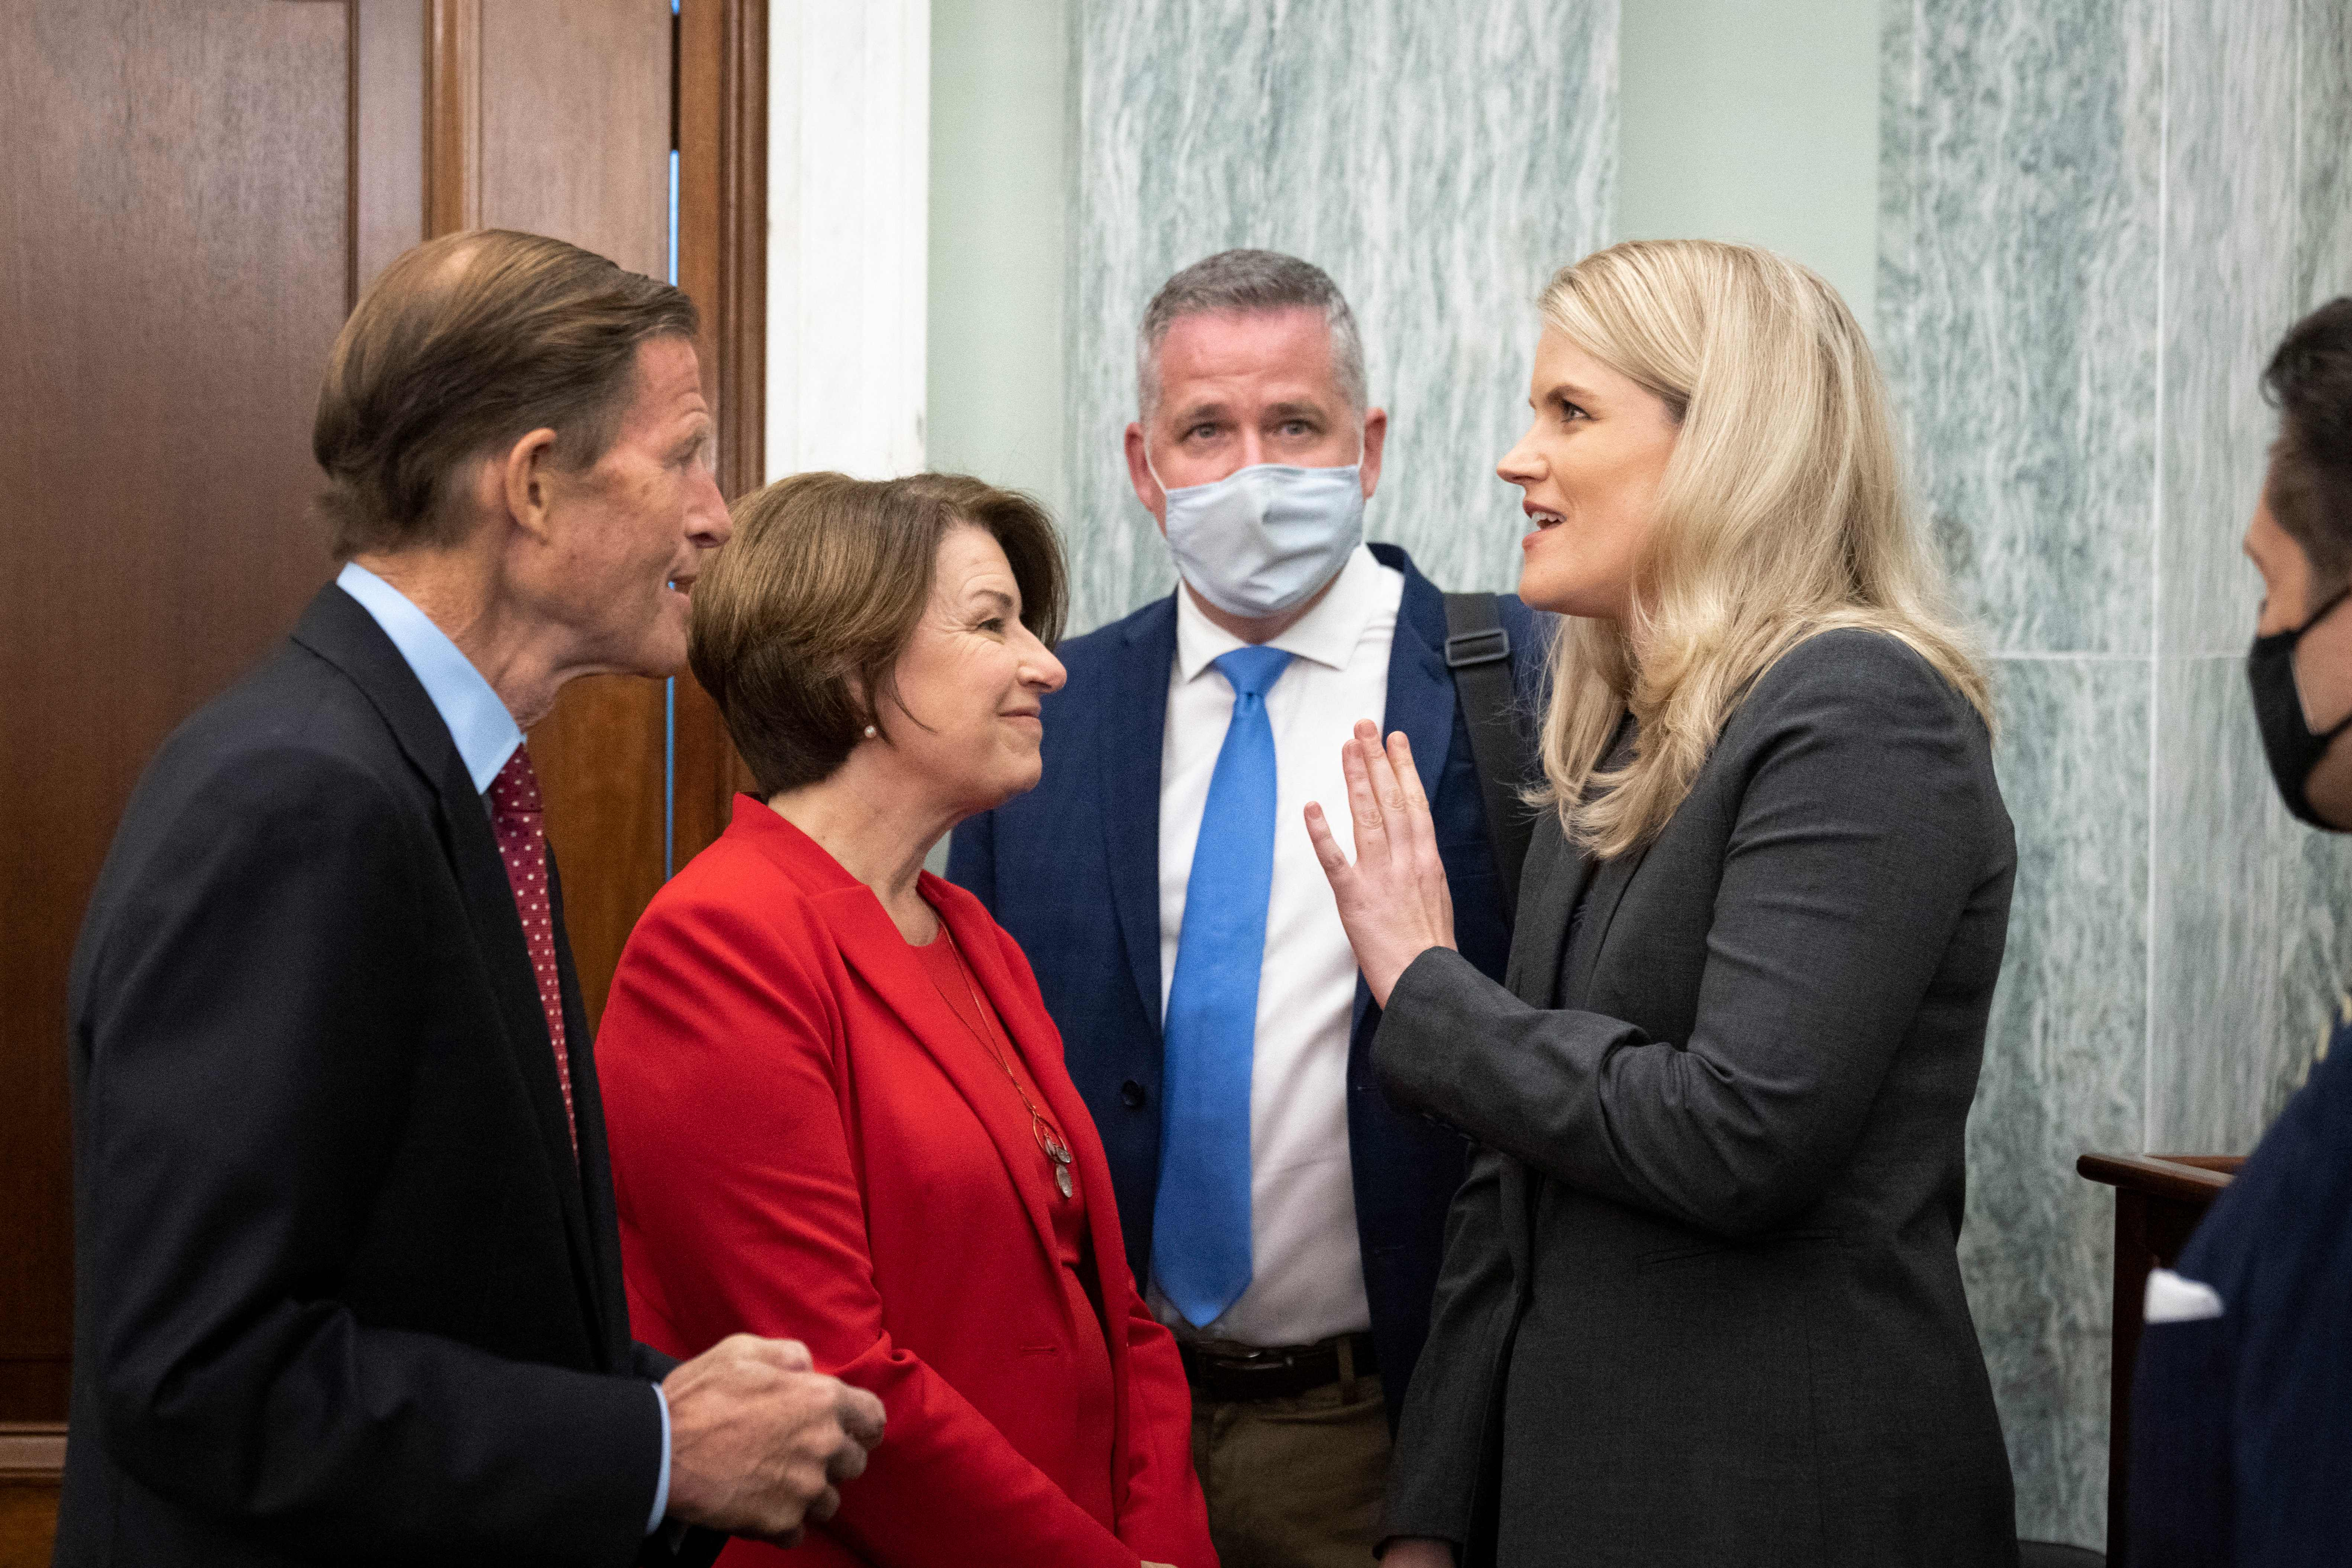 Former Facebook employee and whistleblower Frances Haugen (right) is welcomed by US Senators Richard Blumenthal (left) and Amy Klobuchar (2nd left) as she arrives to testify during a Senate Committee on Commerce, Science, and Transportation hearing on Capitol Hill, October 5, 2021, in Washington, DC. (Photo by DREW ANGERER/POOL/AFP via Getty Images)